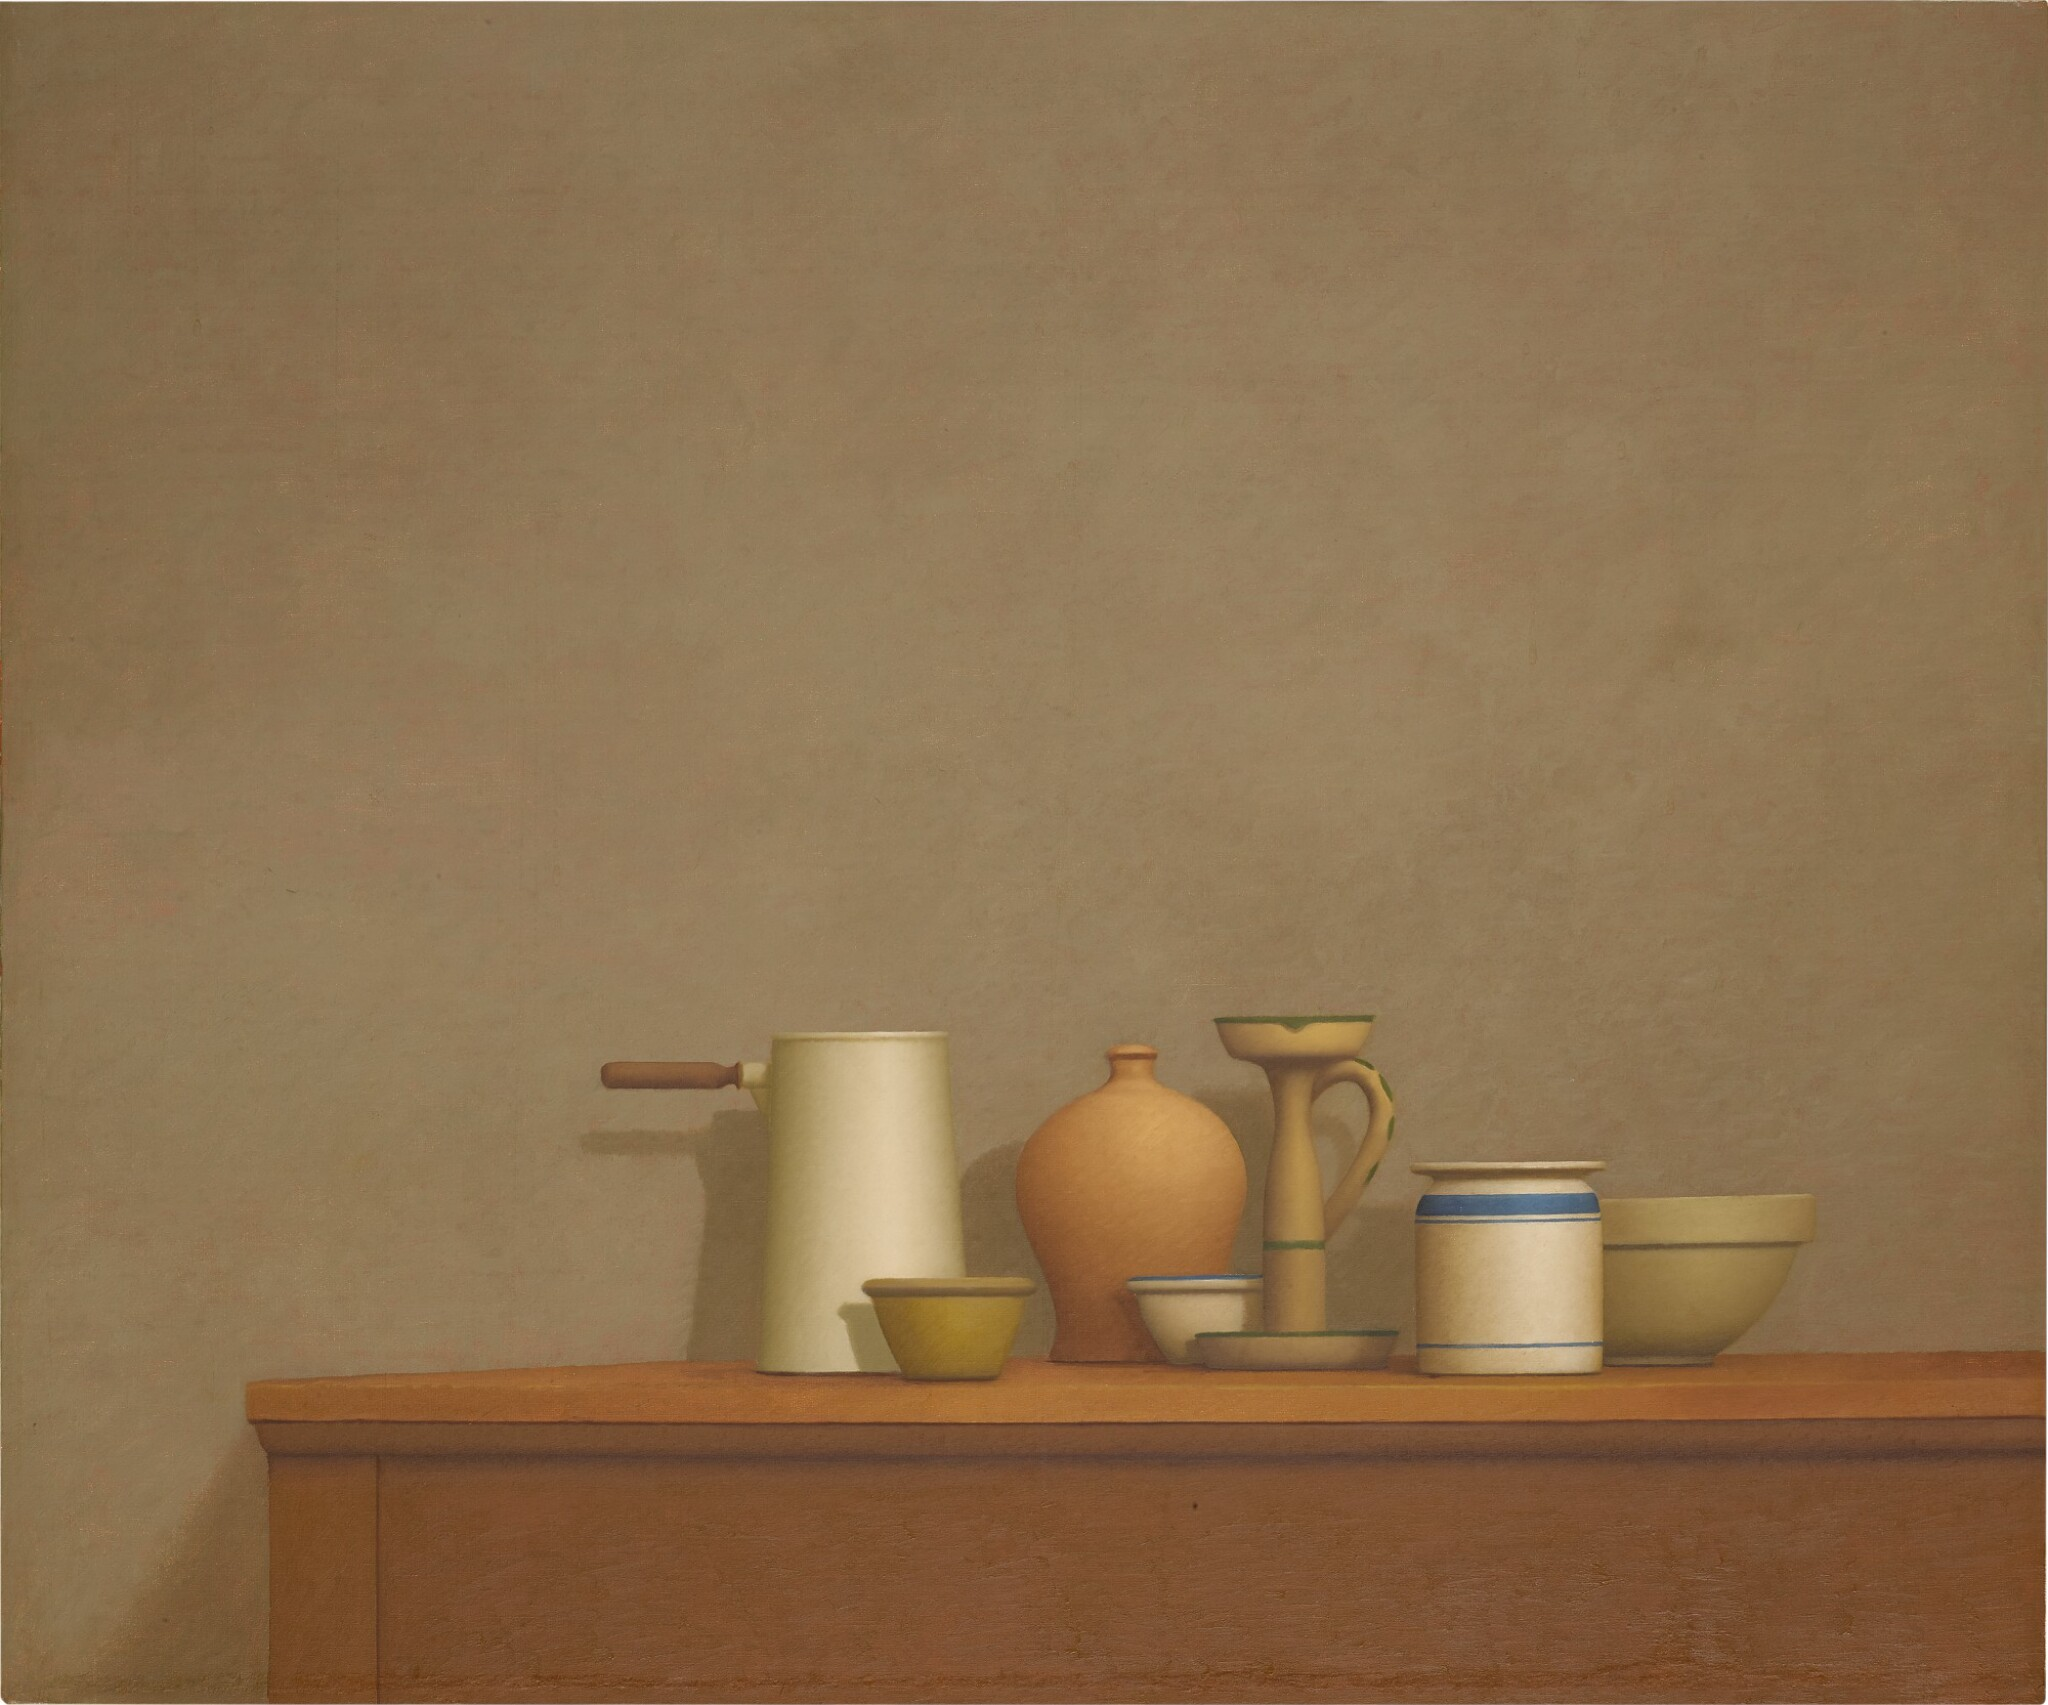 View 1 of Lot 108. Still Life with Seven Objects.